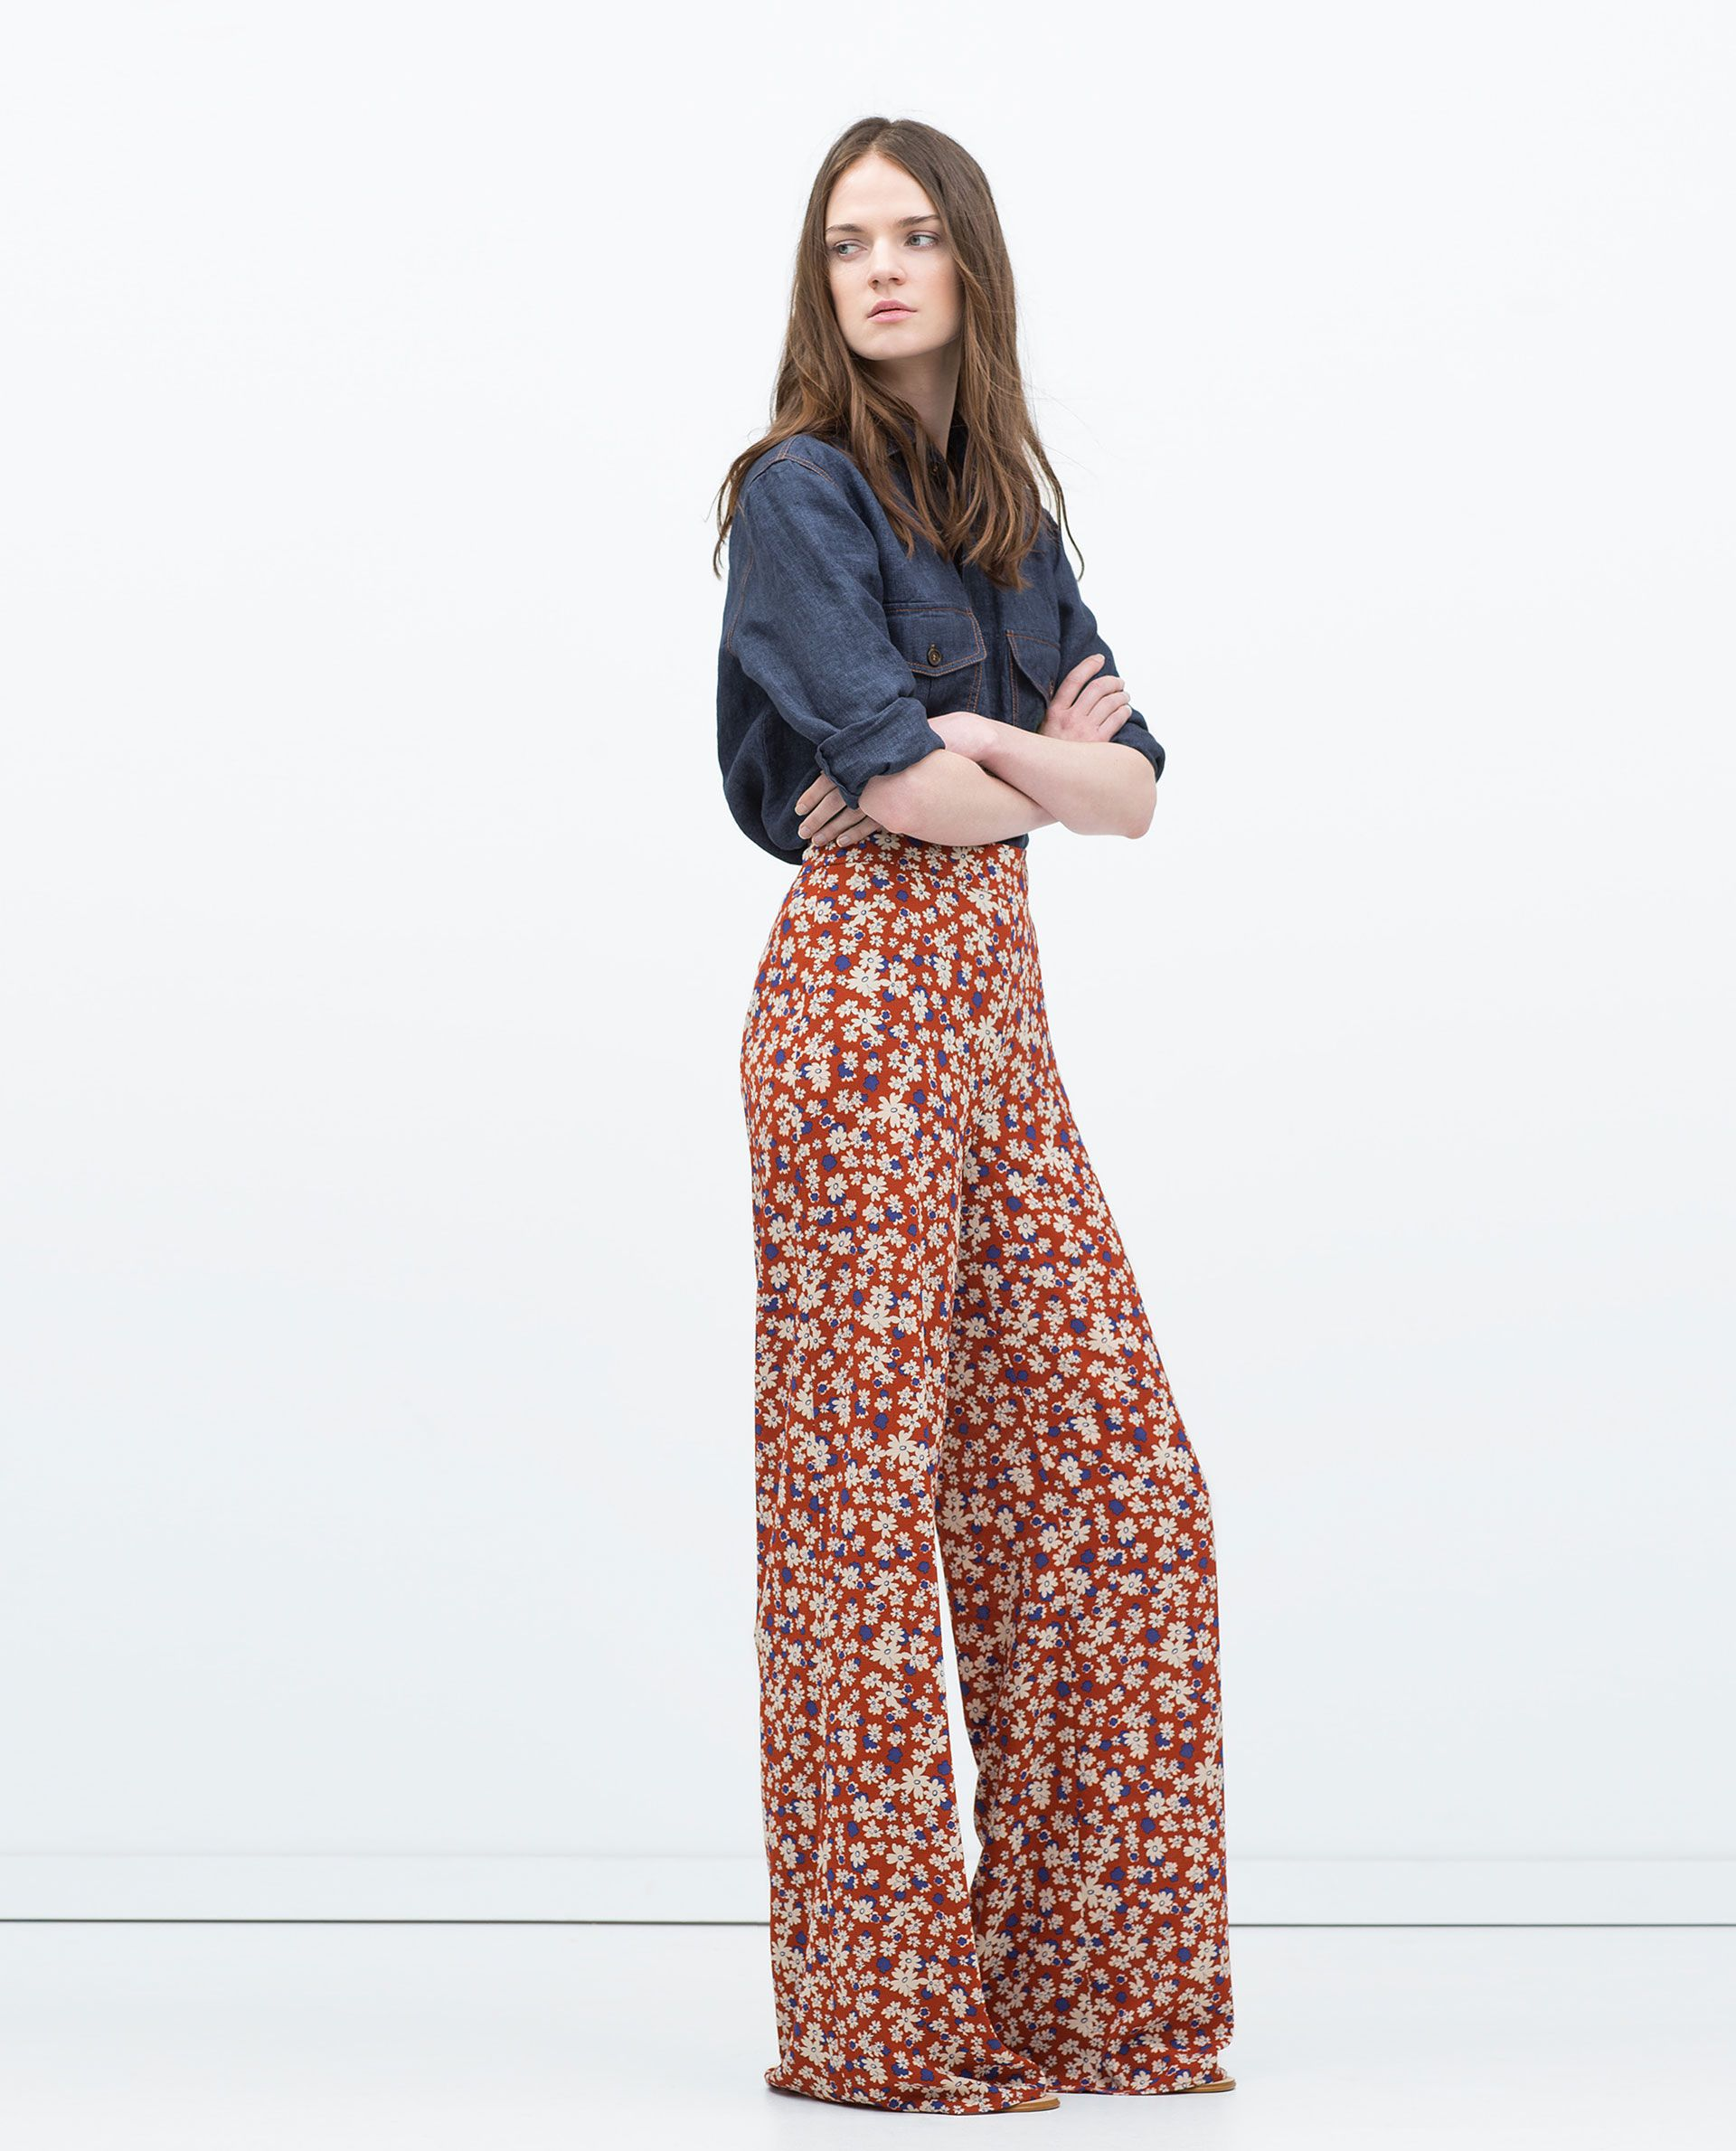 Fashion style How to orange wear floral pants for woman